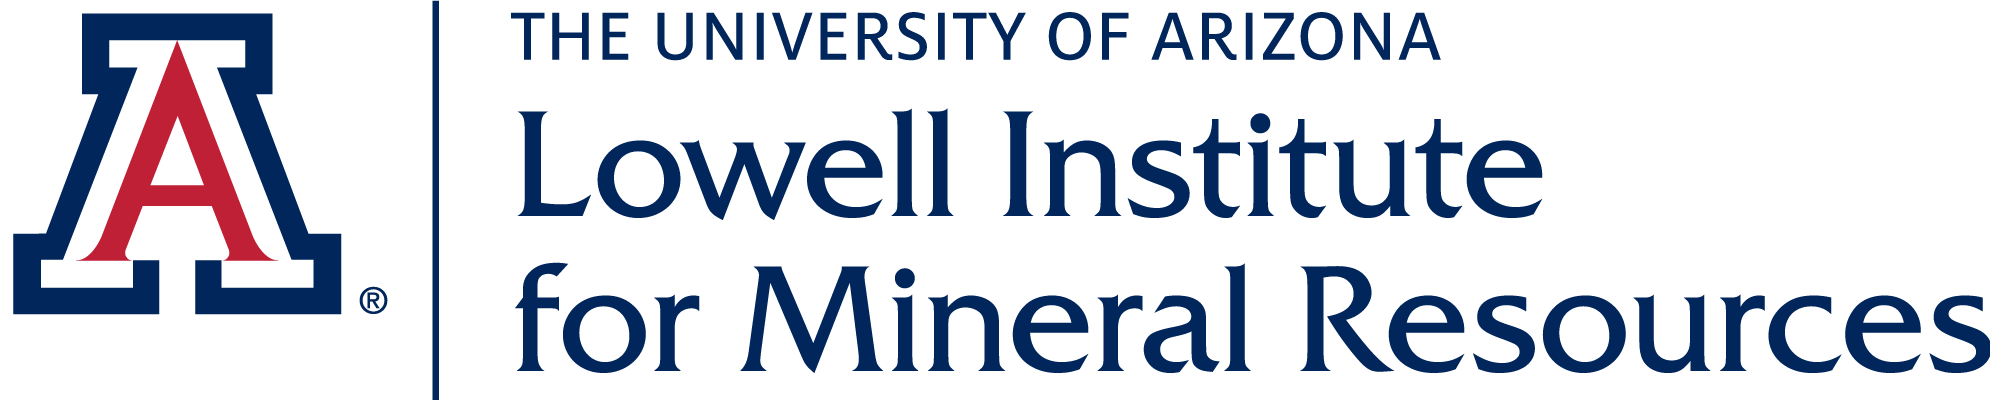 University of Arizona Lowell Institute for Mineral Resources